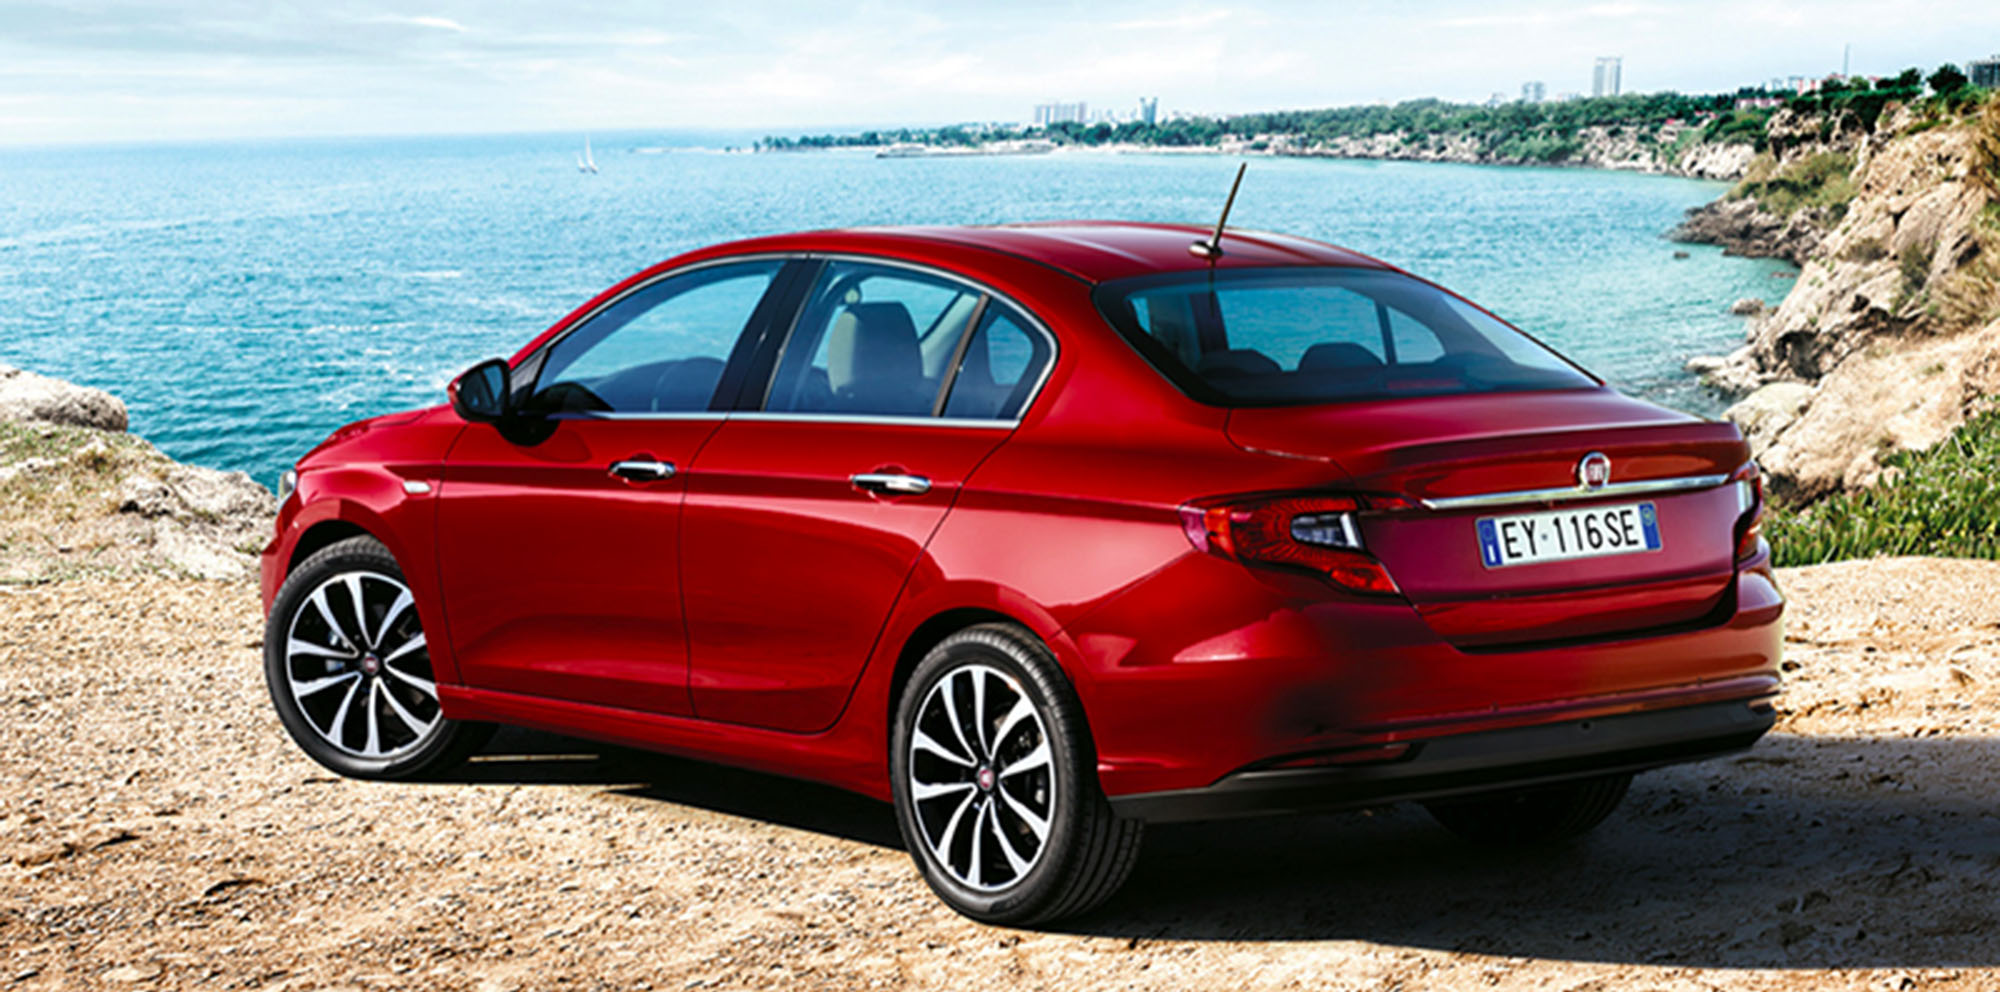 mazda 3 vs cx with Photos on Photos further Subaru Crosstrek Review together with Mazda 3 sedan 2018 galeria 10 together with Renault Captur J87 Phase 1 5 as well 19.